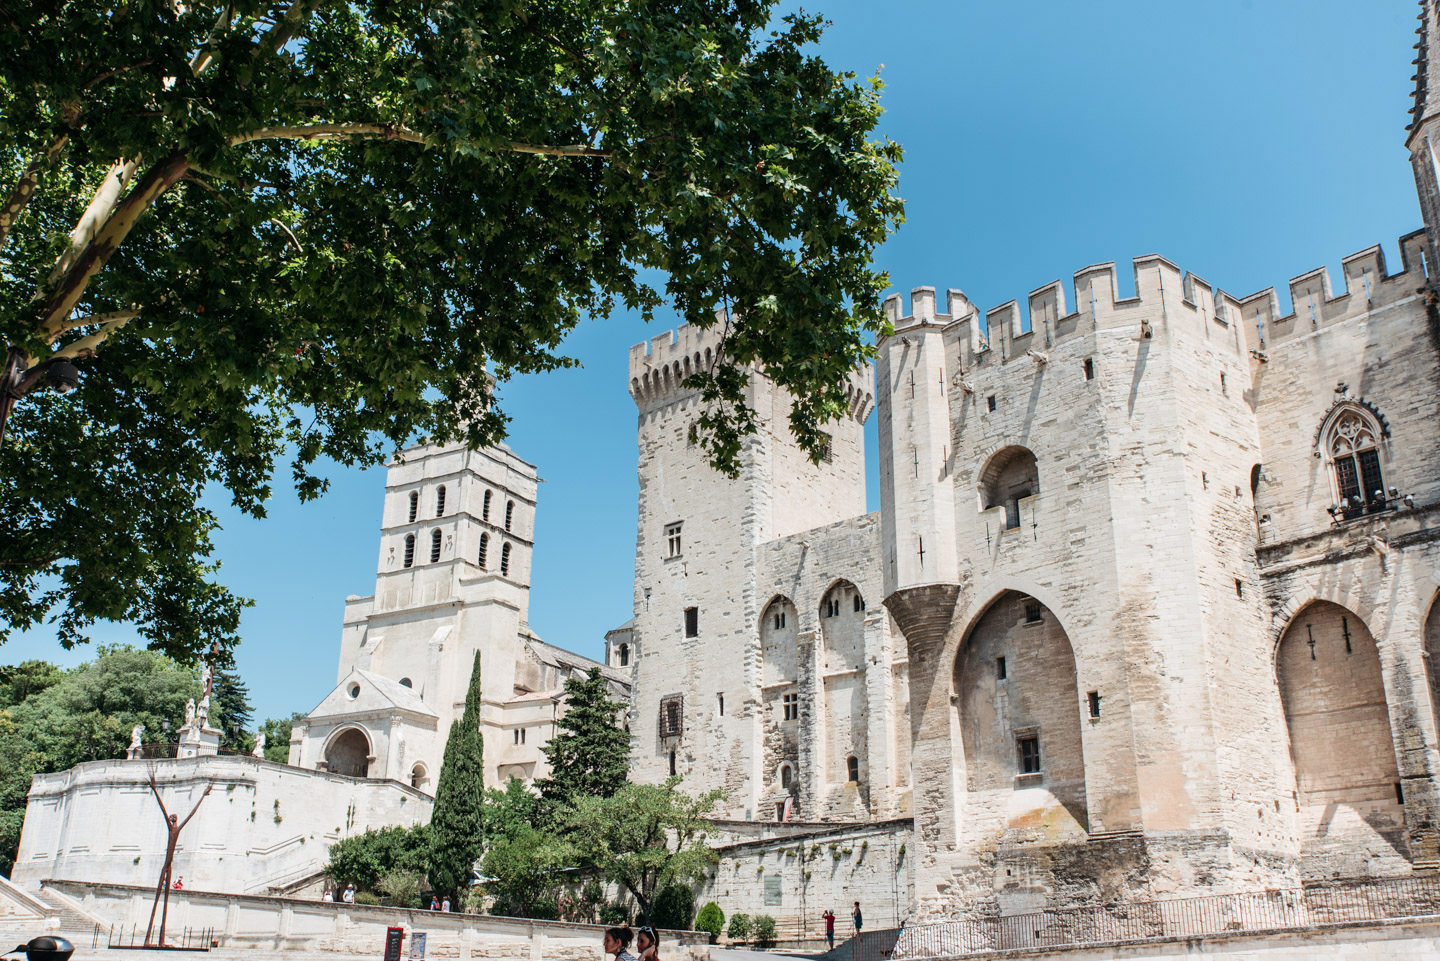 Blog-Mode-And-The-City-Lifestyle-Voyage-Avignon-Mas-Des-Herbes-Blanches-6